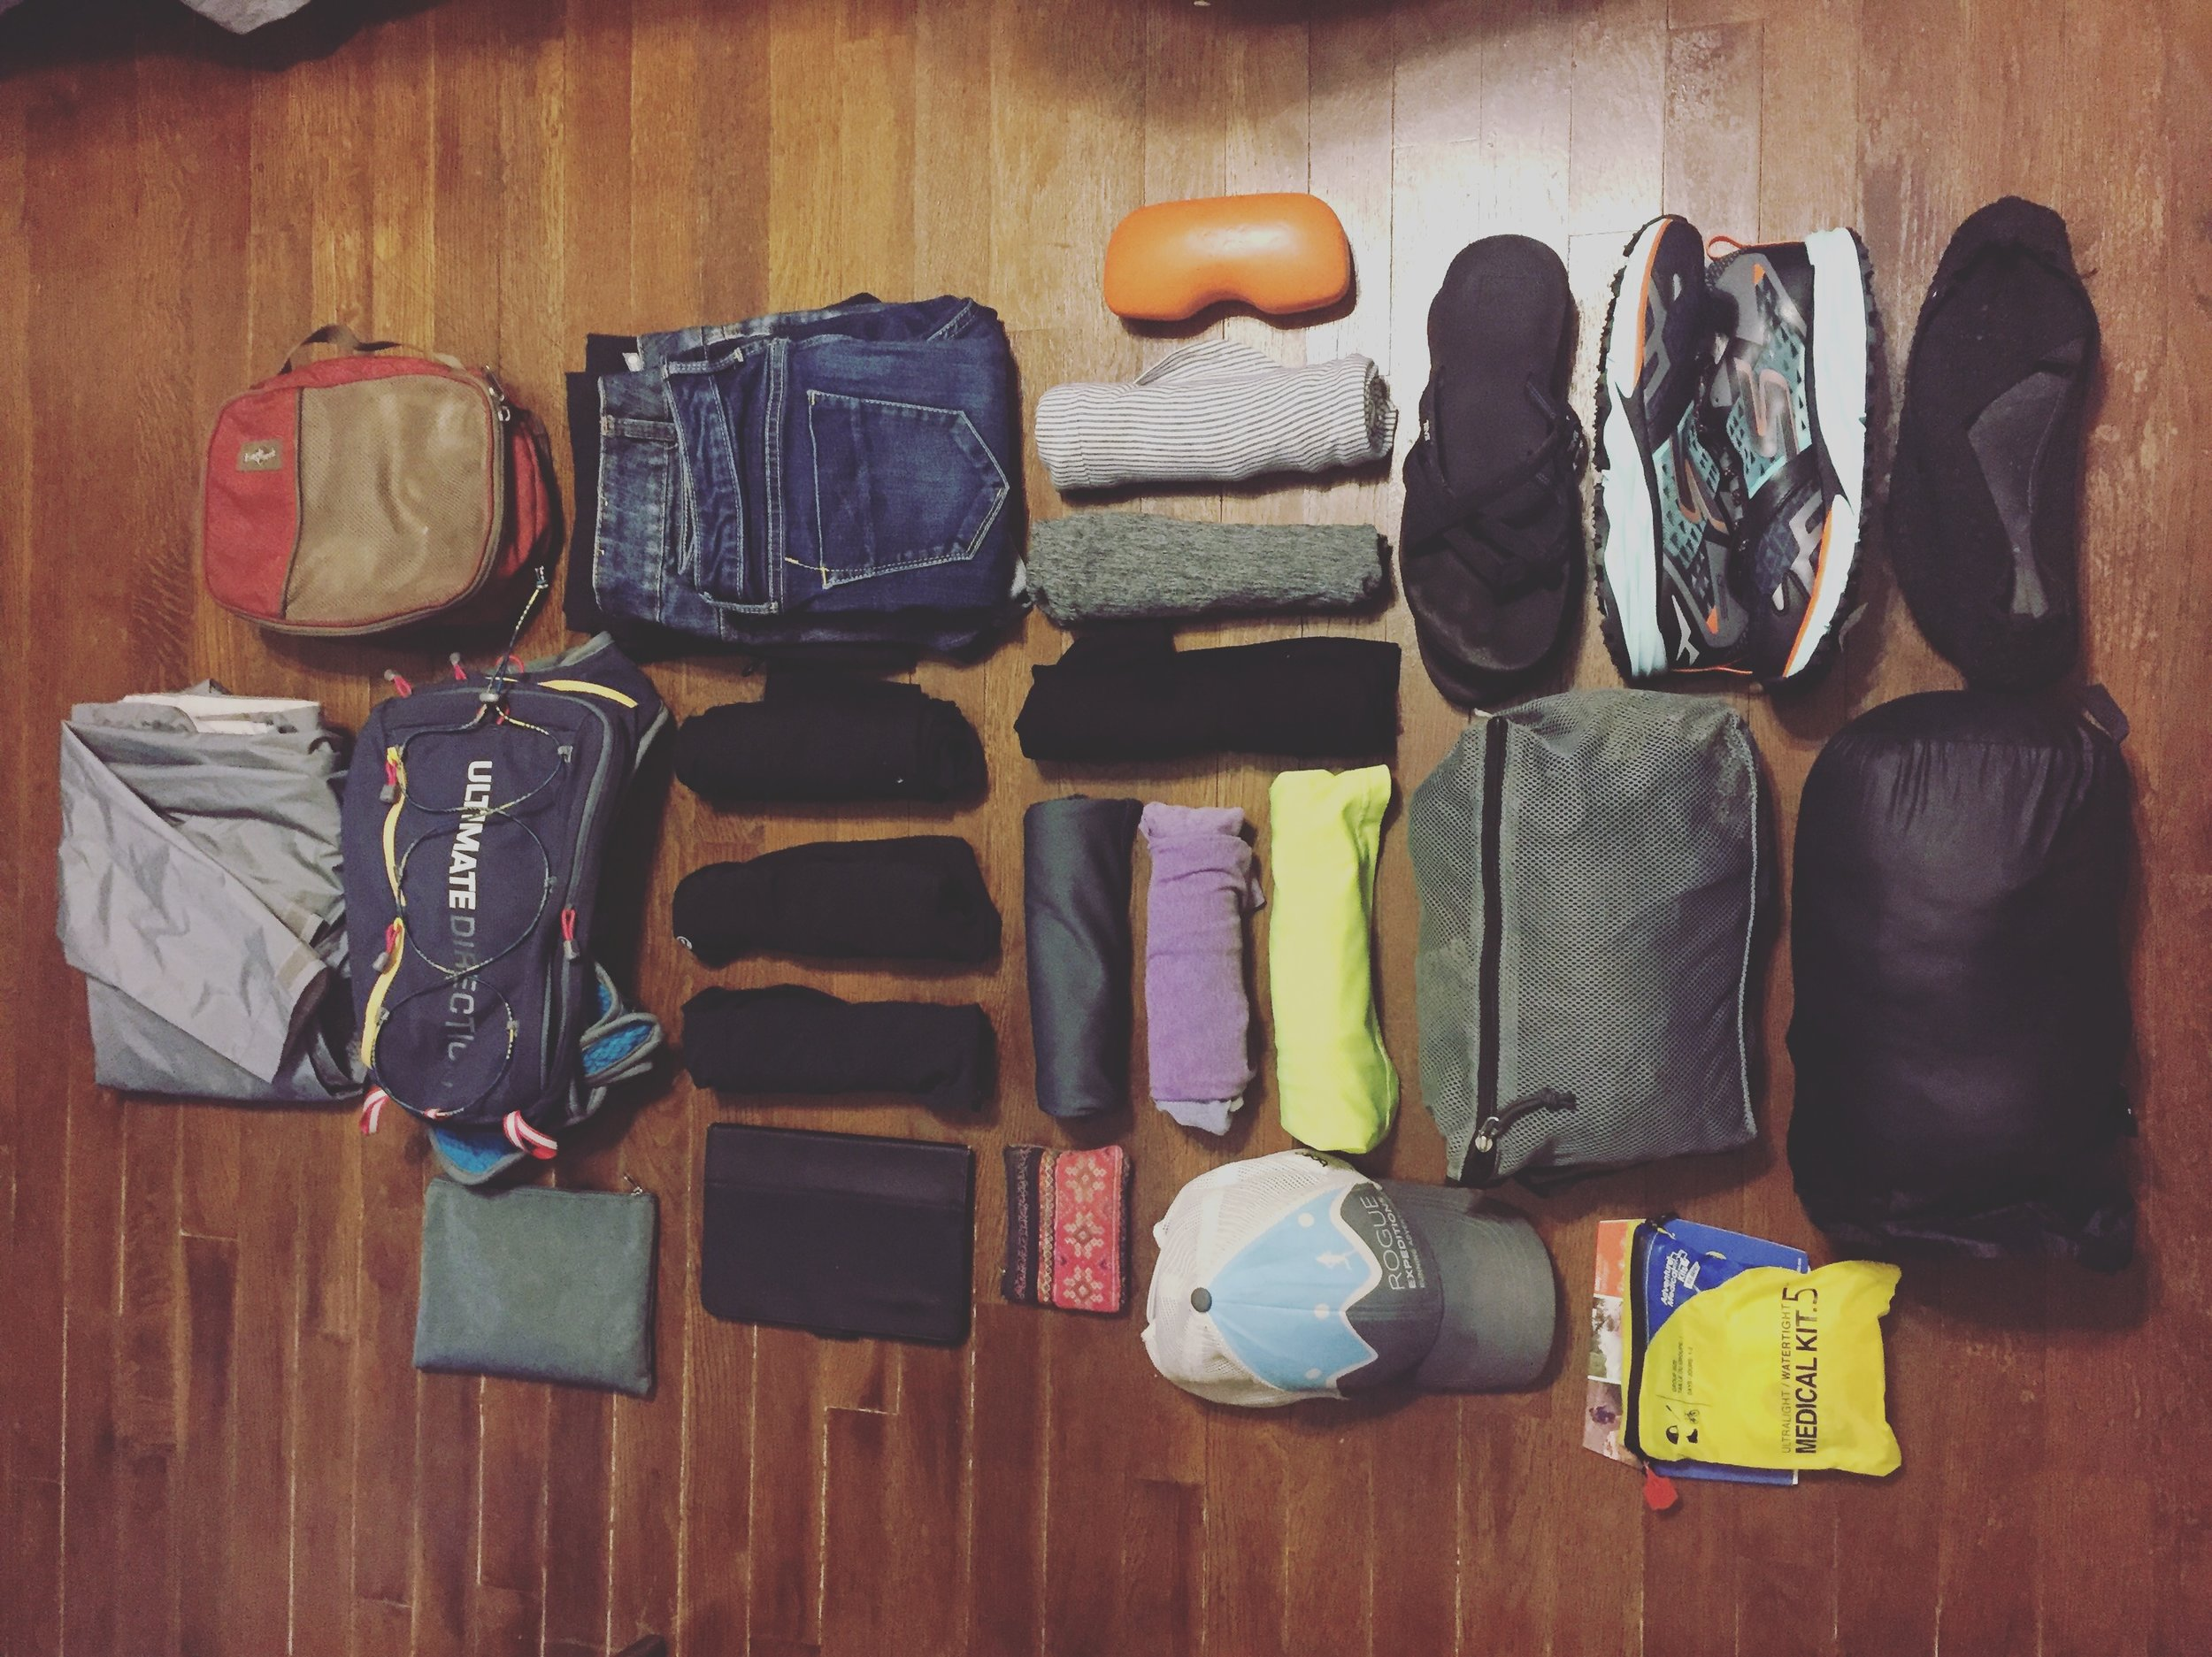 The basics: This is what I need for one month of traveling (for me, that means a little bit of city time and whole lot of outdoor and running time).